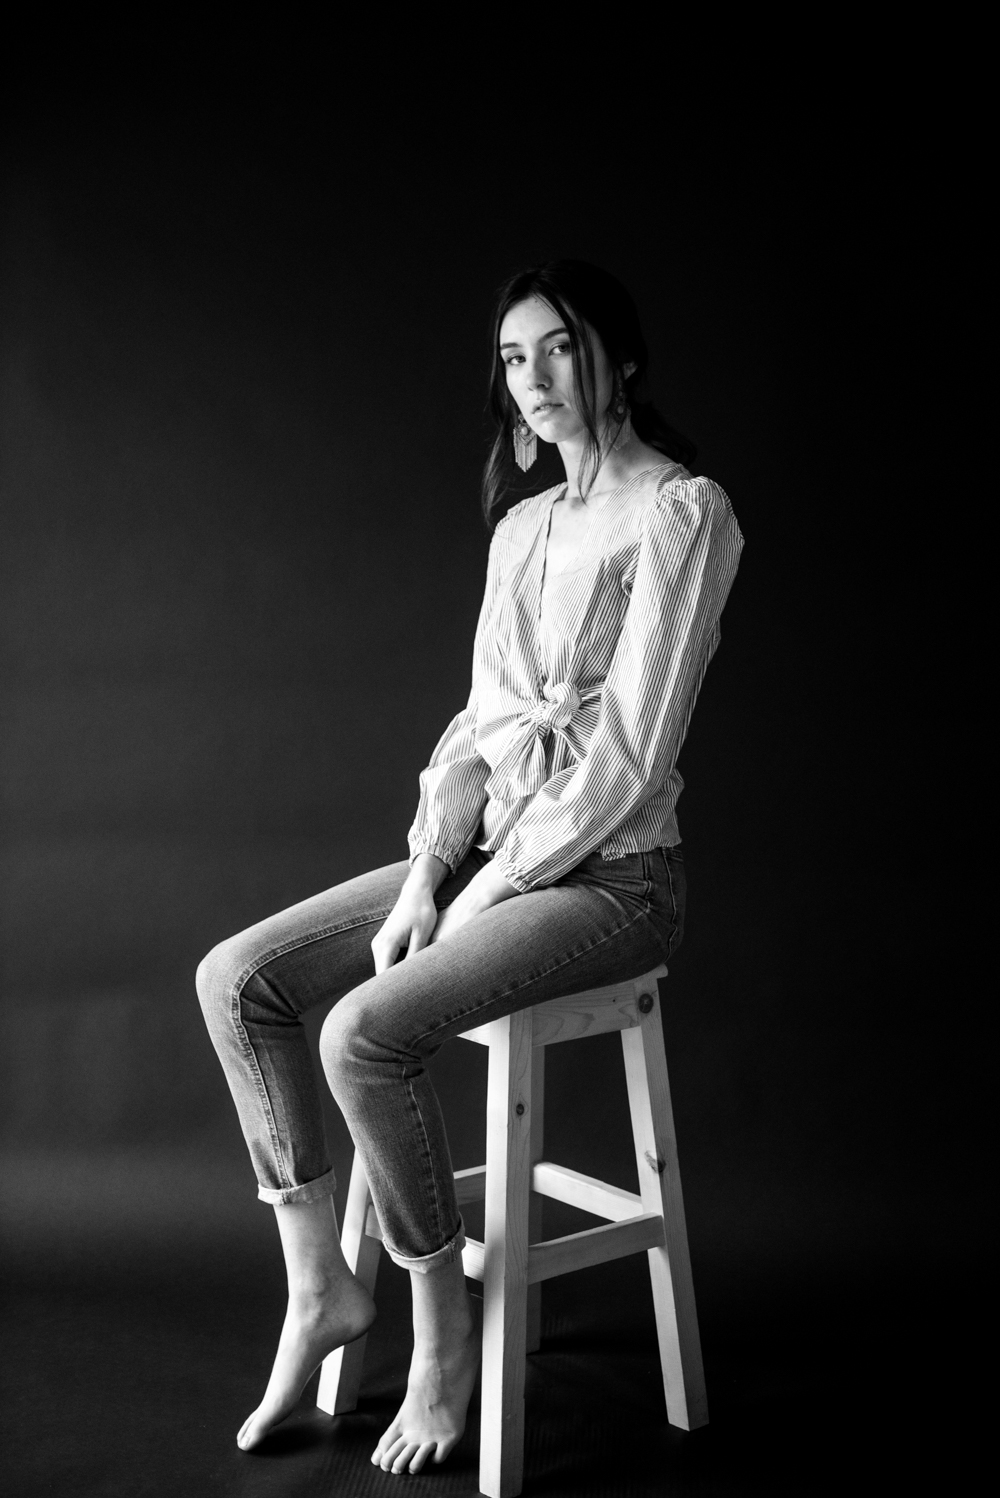 A Studio Shoot with Jessica from D1 Models // www.oliviabossert.com // fashion photography, black and white, fashion, beauty, cornwall, falmouth, bath, london, model agency, new face, editorial, styling, asos, #fashionphotography #fashion #cornwall #editorialphotography #blackandwhite